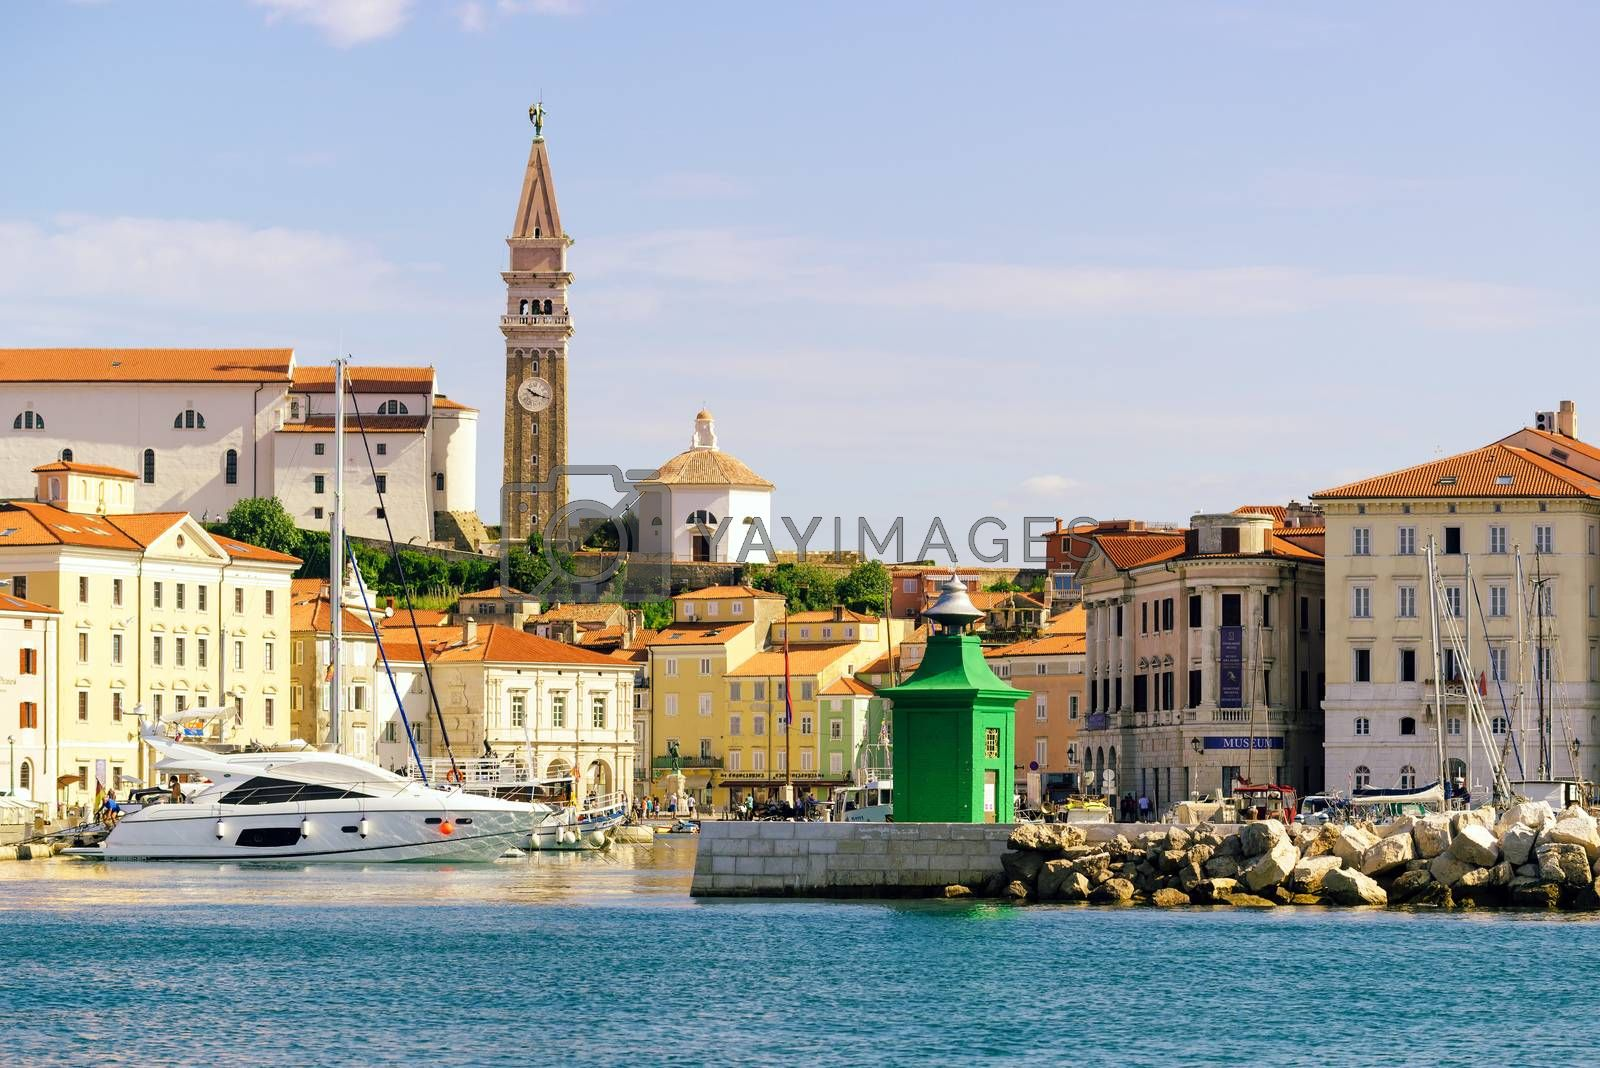 PIRAN, SLOVENIA - AUGUST 30, 2016: Piran marina with fishing boats and old town in background, one of major tourist attractions on Slovenia's Adriatic coast